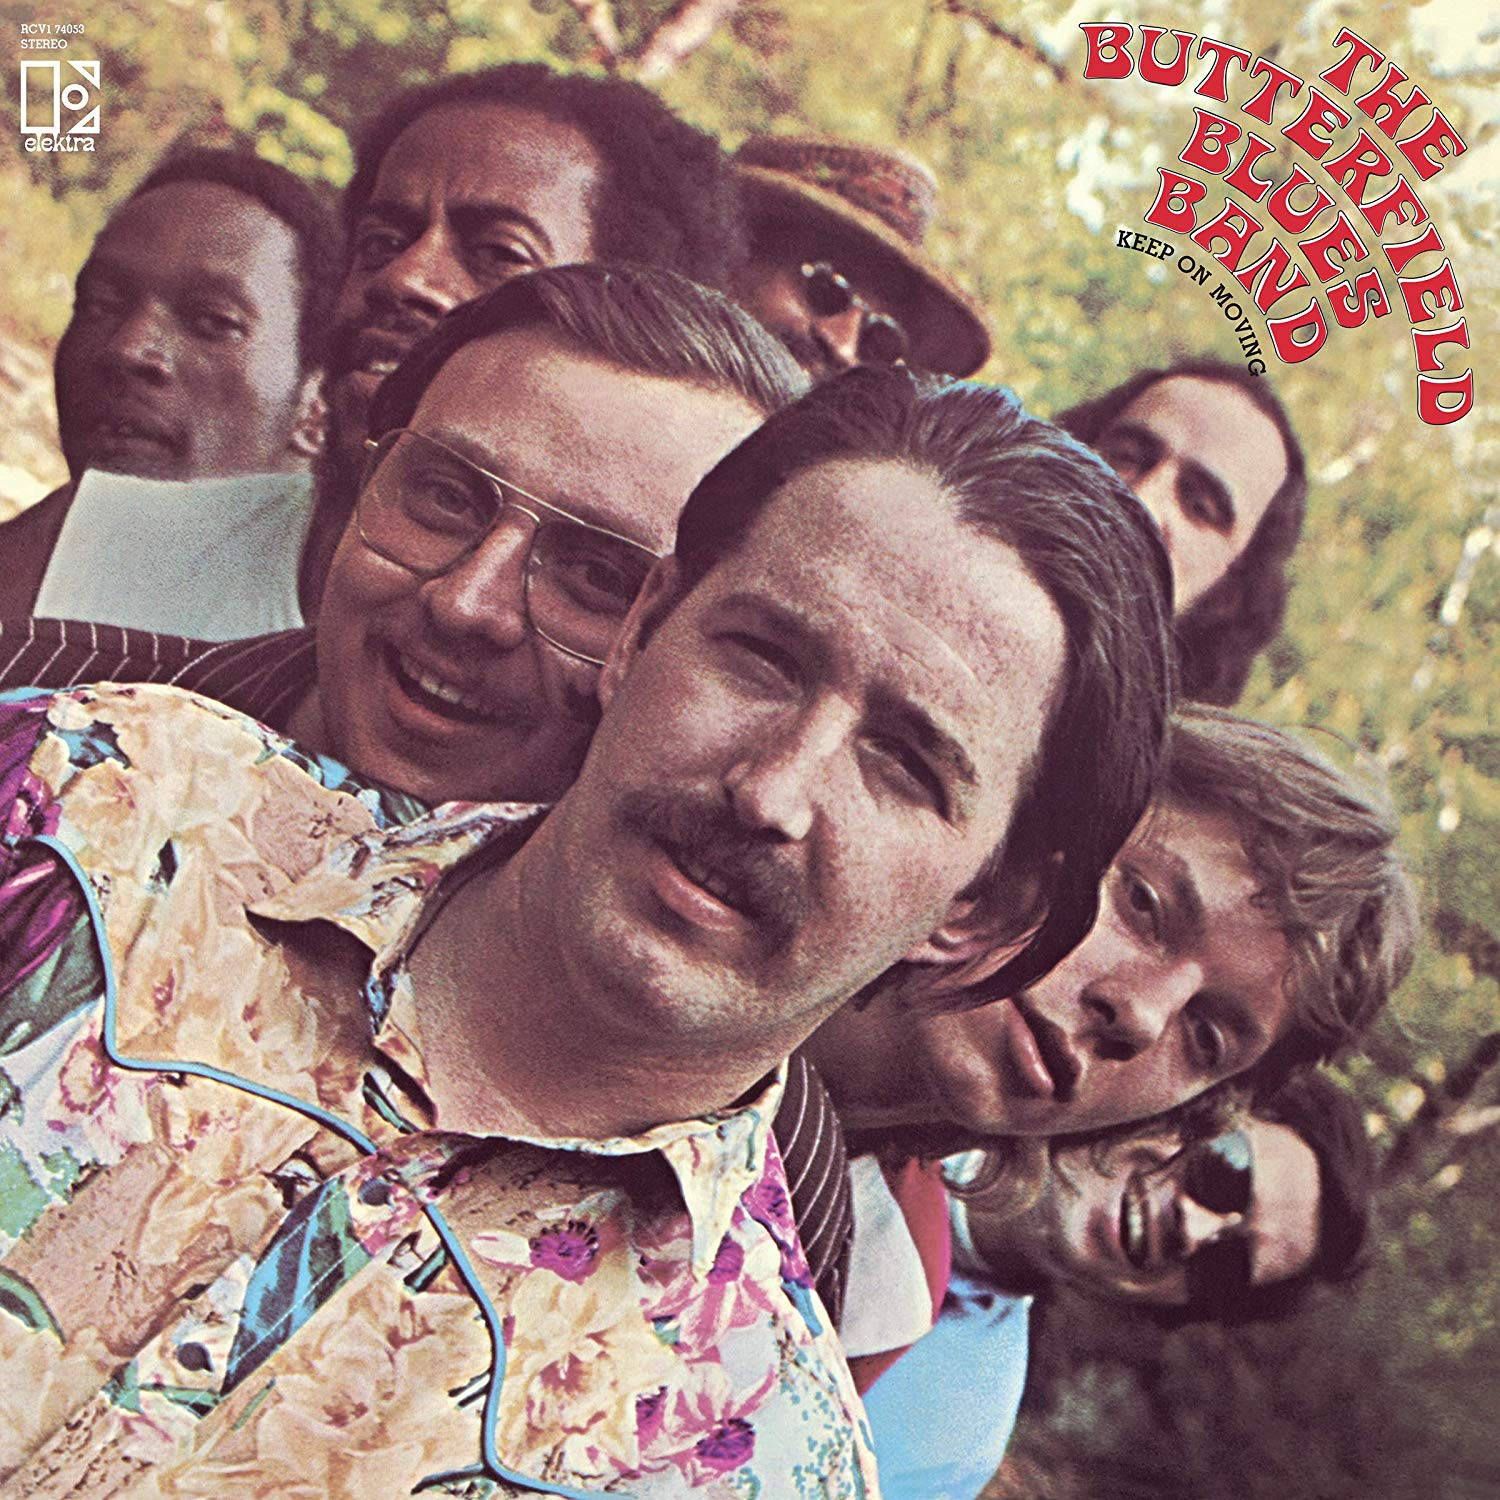 KEEP ON MOVING: PAUL BUTTERFIELD [Pre-Order Vinyl] OUT 26.07.19 PRE-ORDER NOW